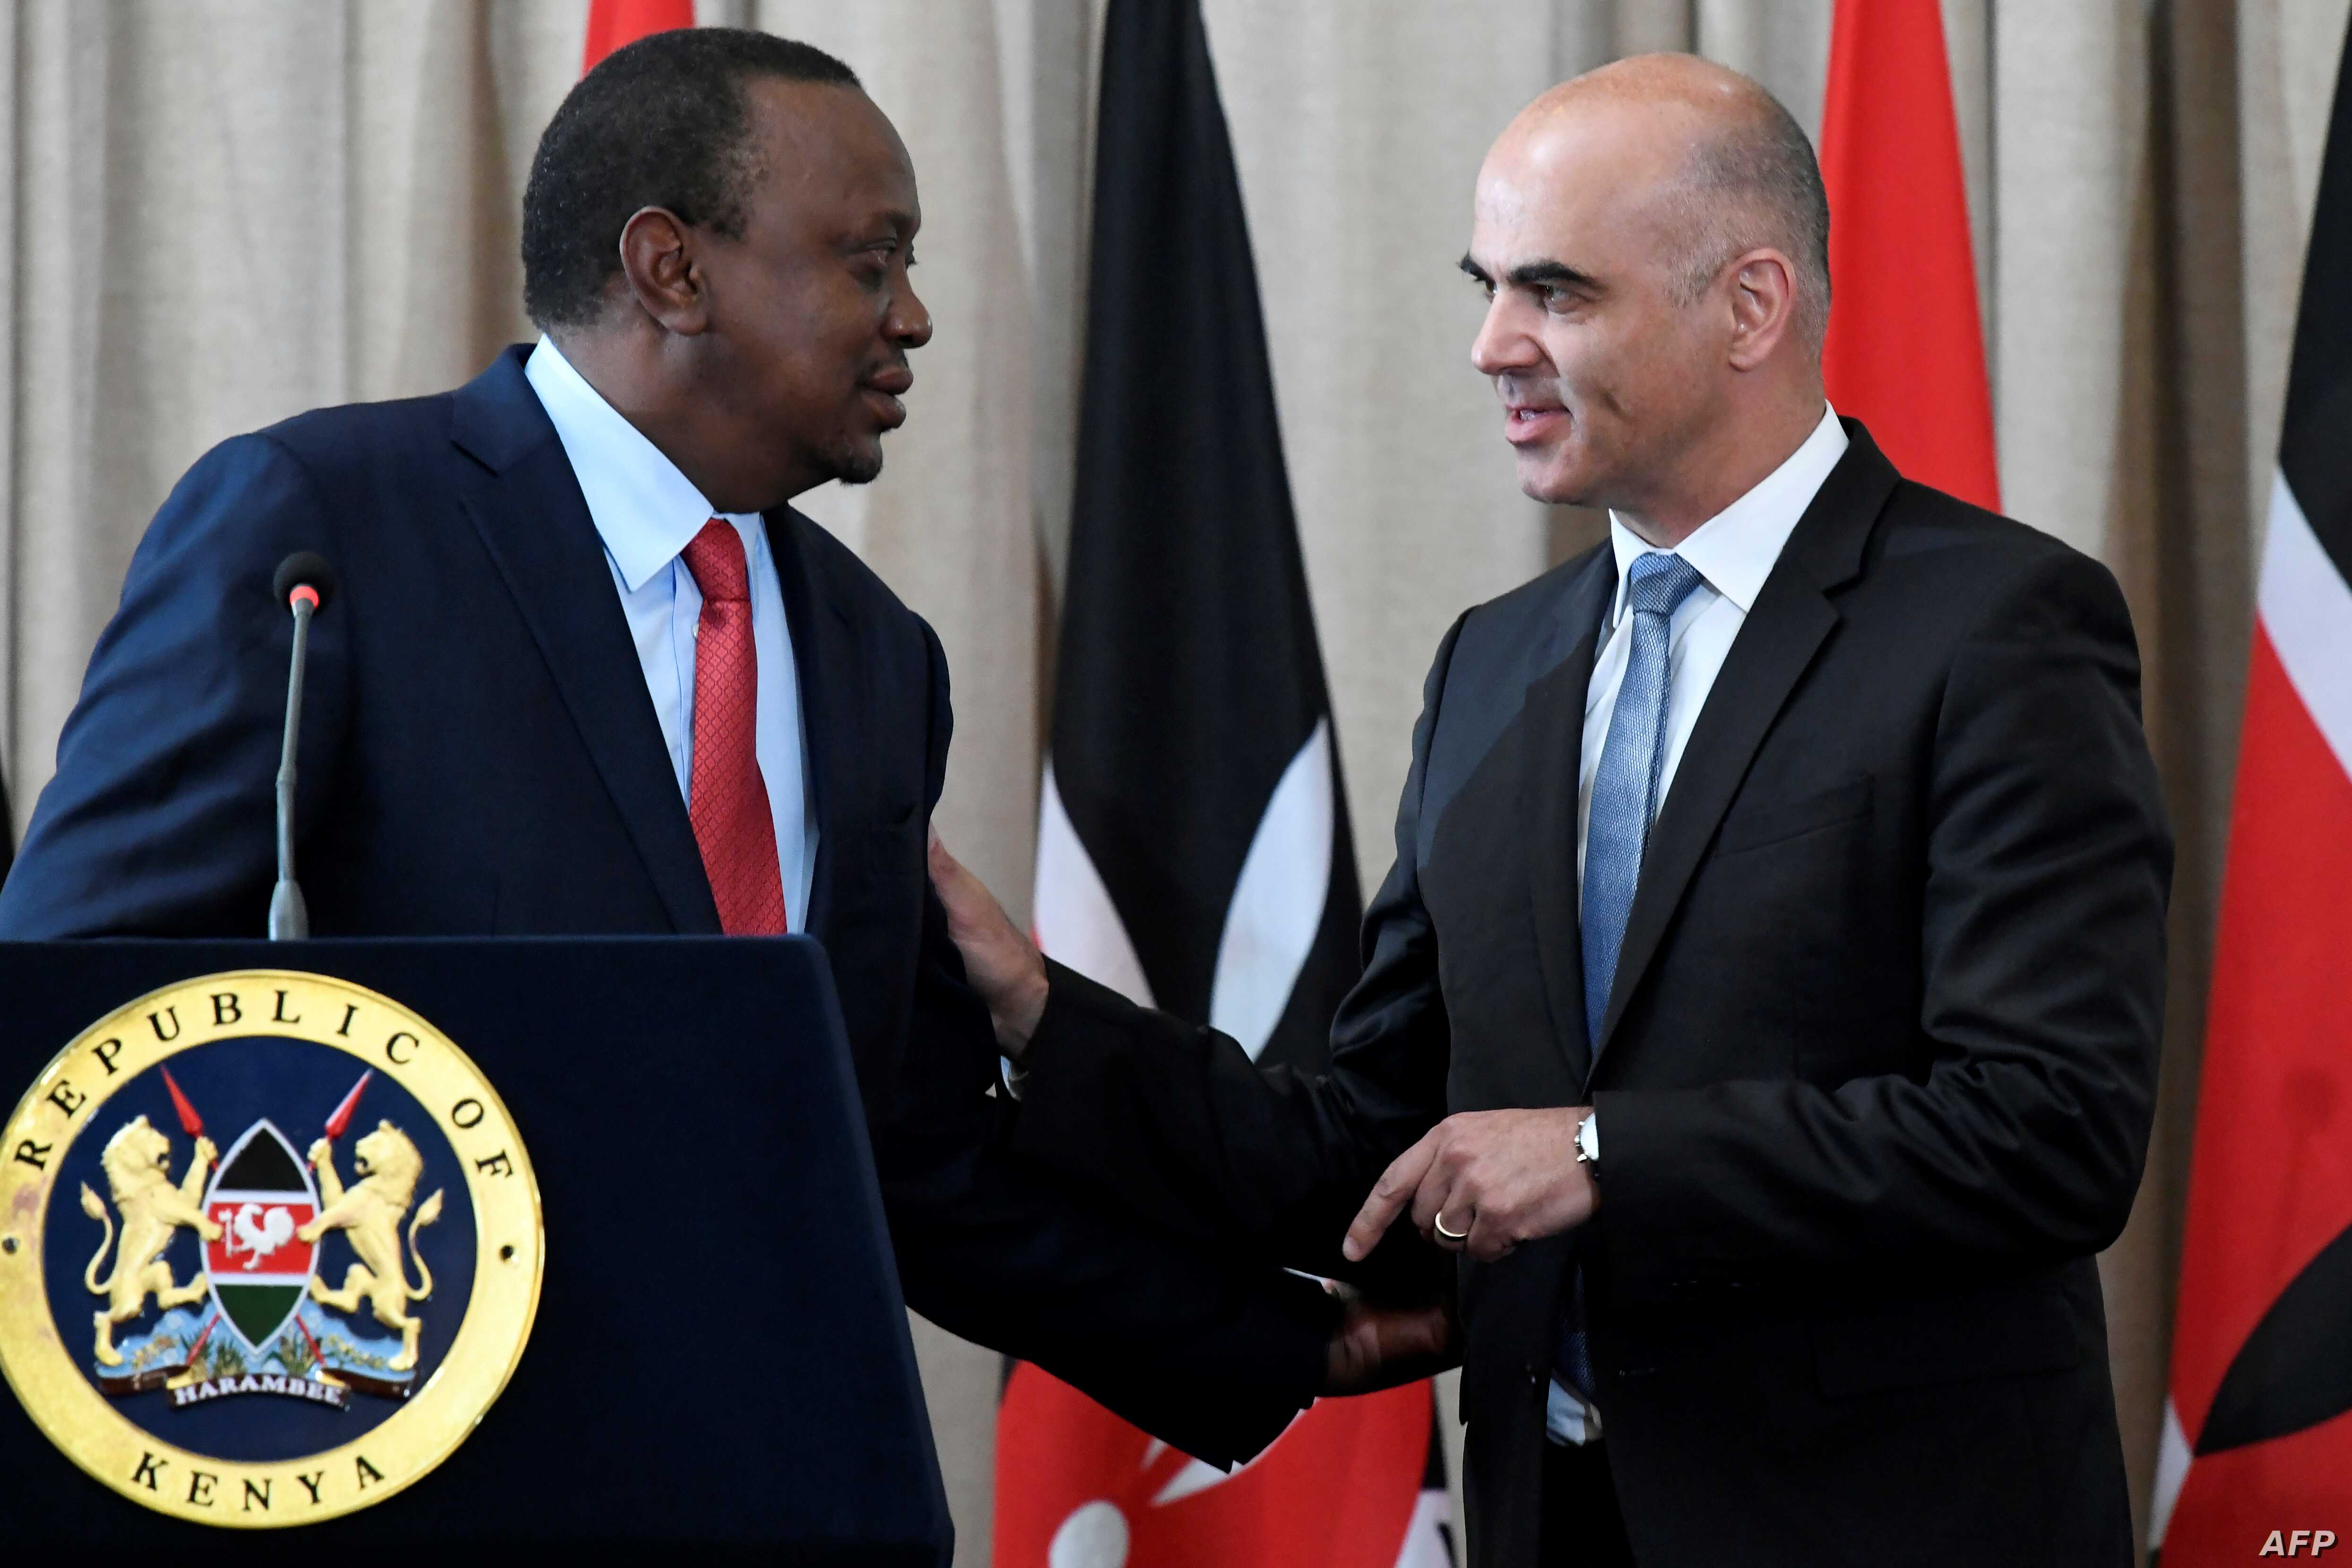 Swiss President Alain Berset (R) speaks with his Kenyan counterpart President Uhuru Kenyatta during a joint press conference at the State House in Nairobi, July 9, 2018, during Berset's official visit.